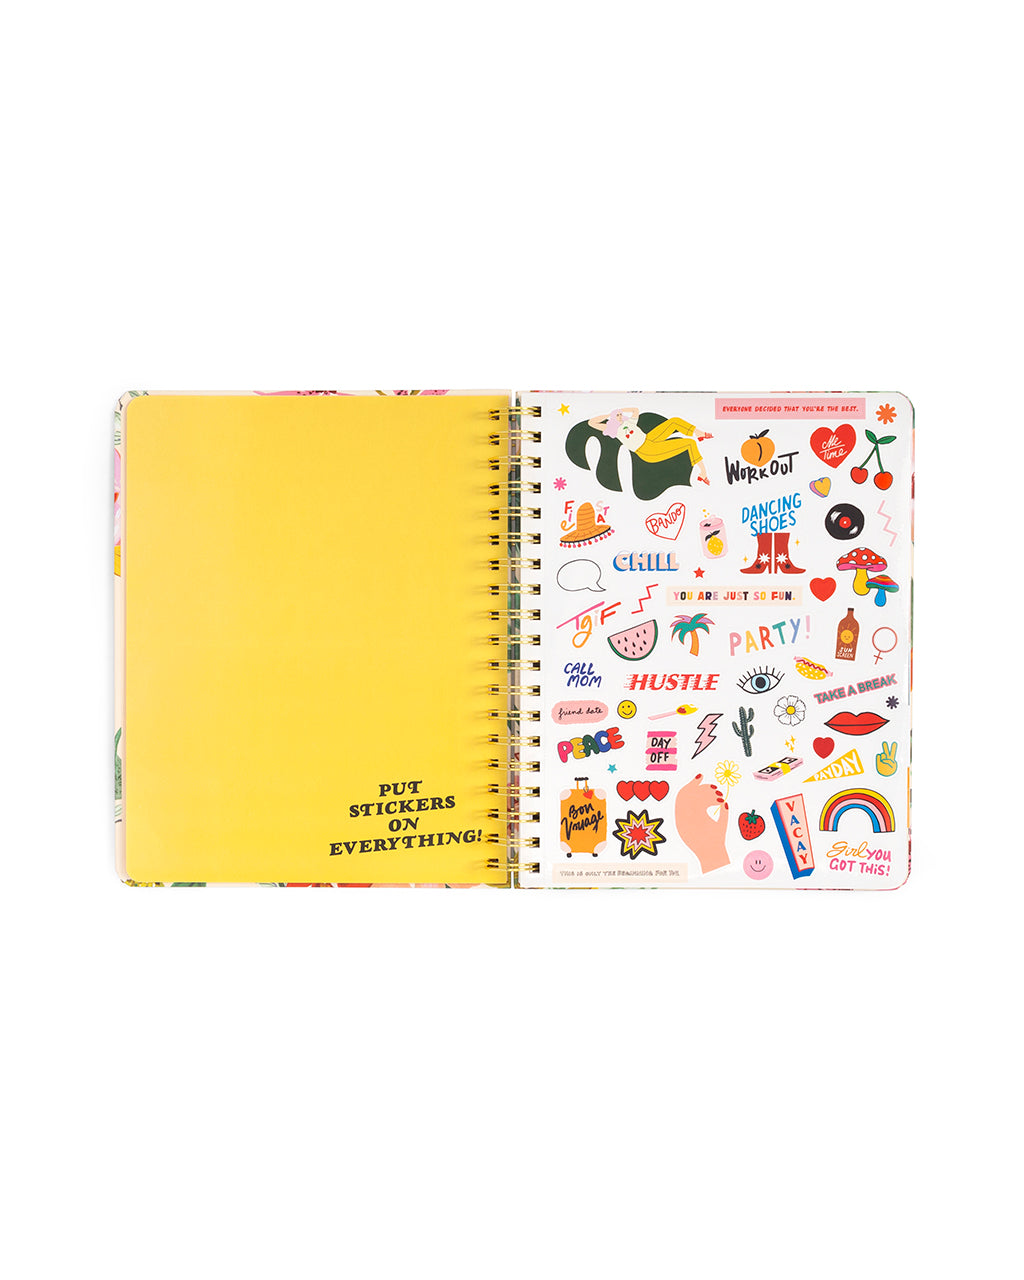 2019 large 12 month annual planner this will be my year